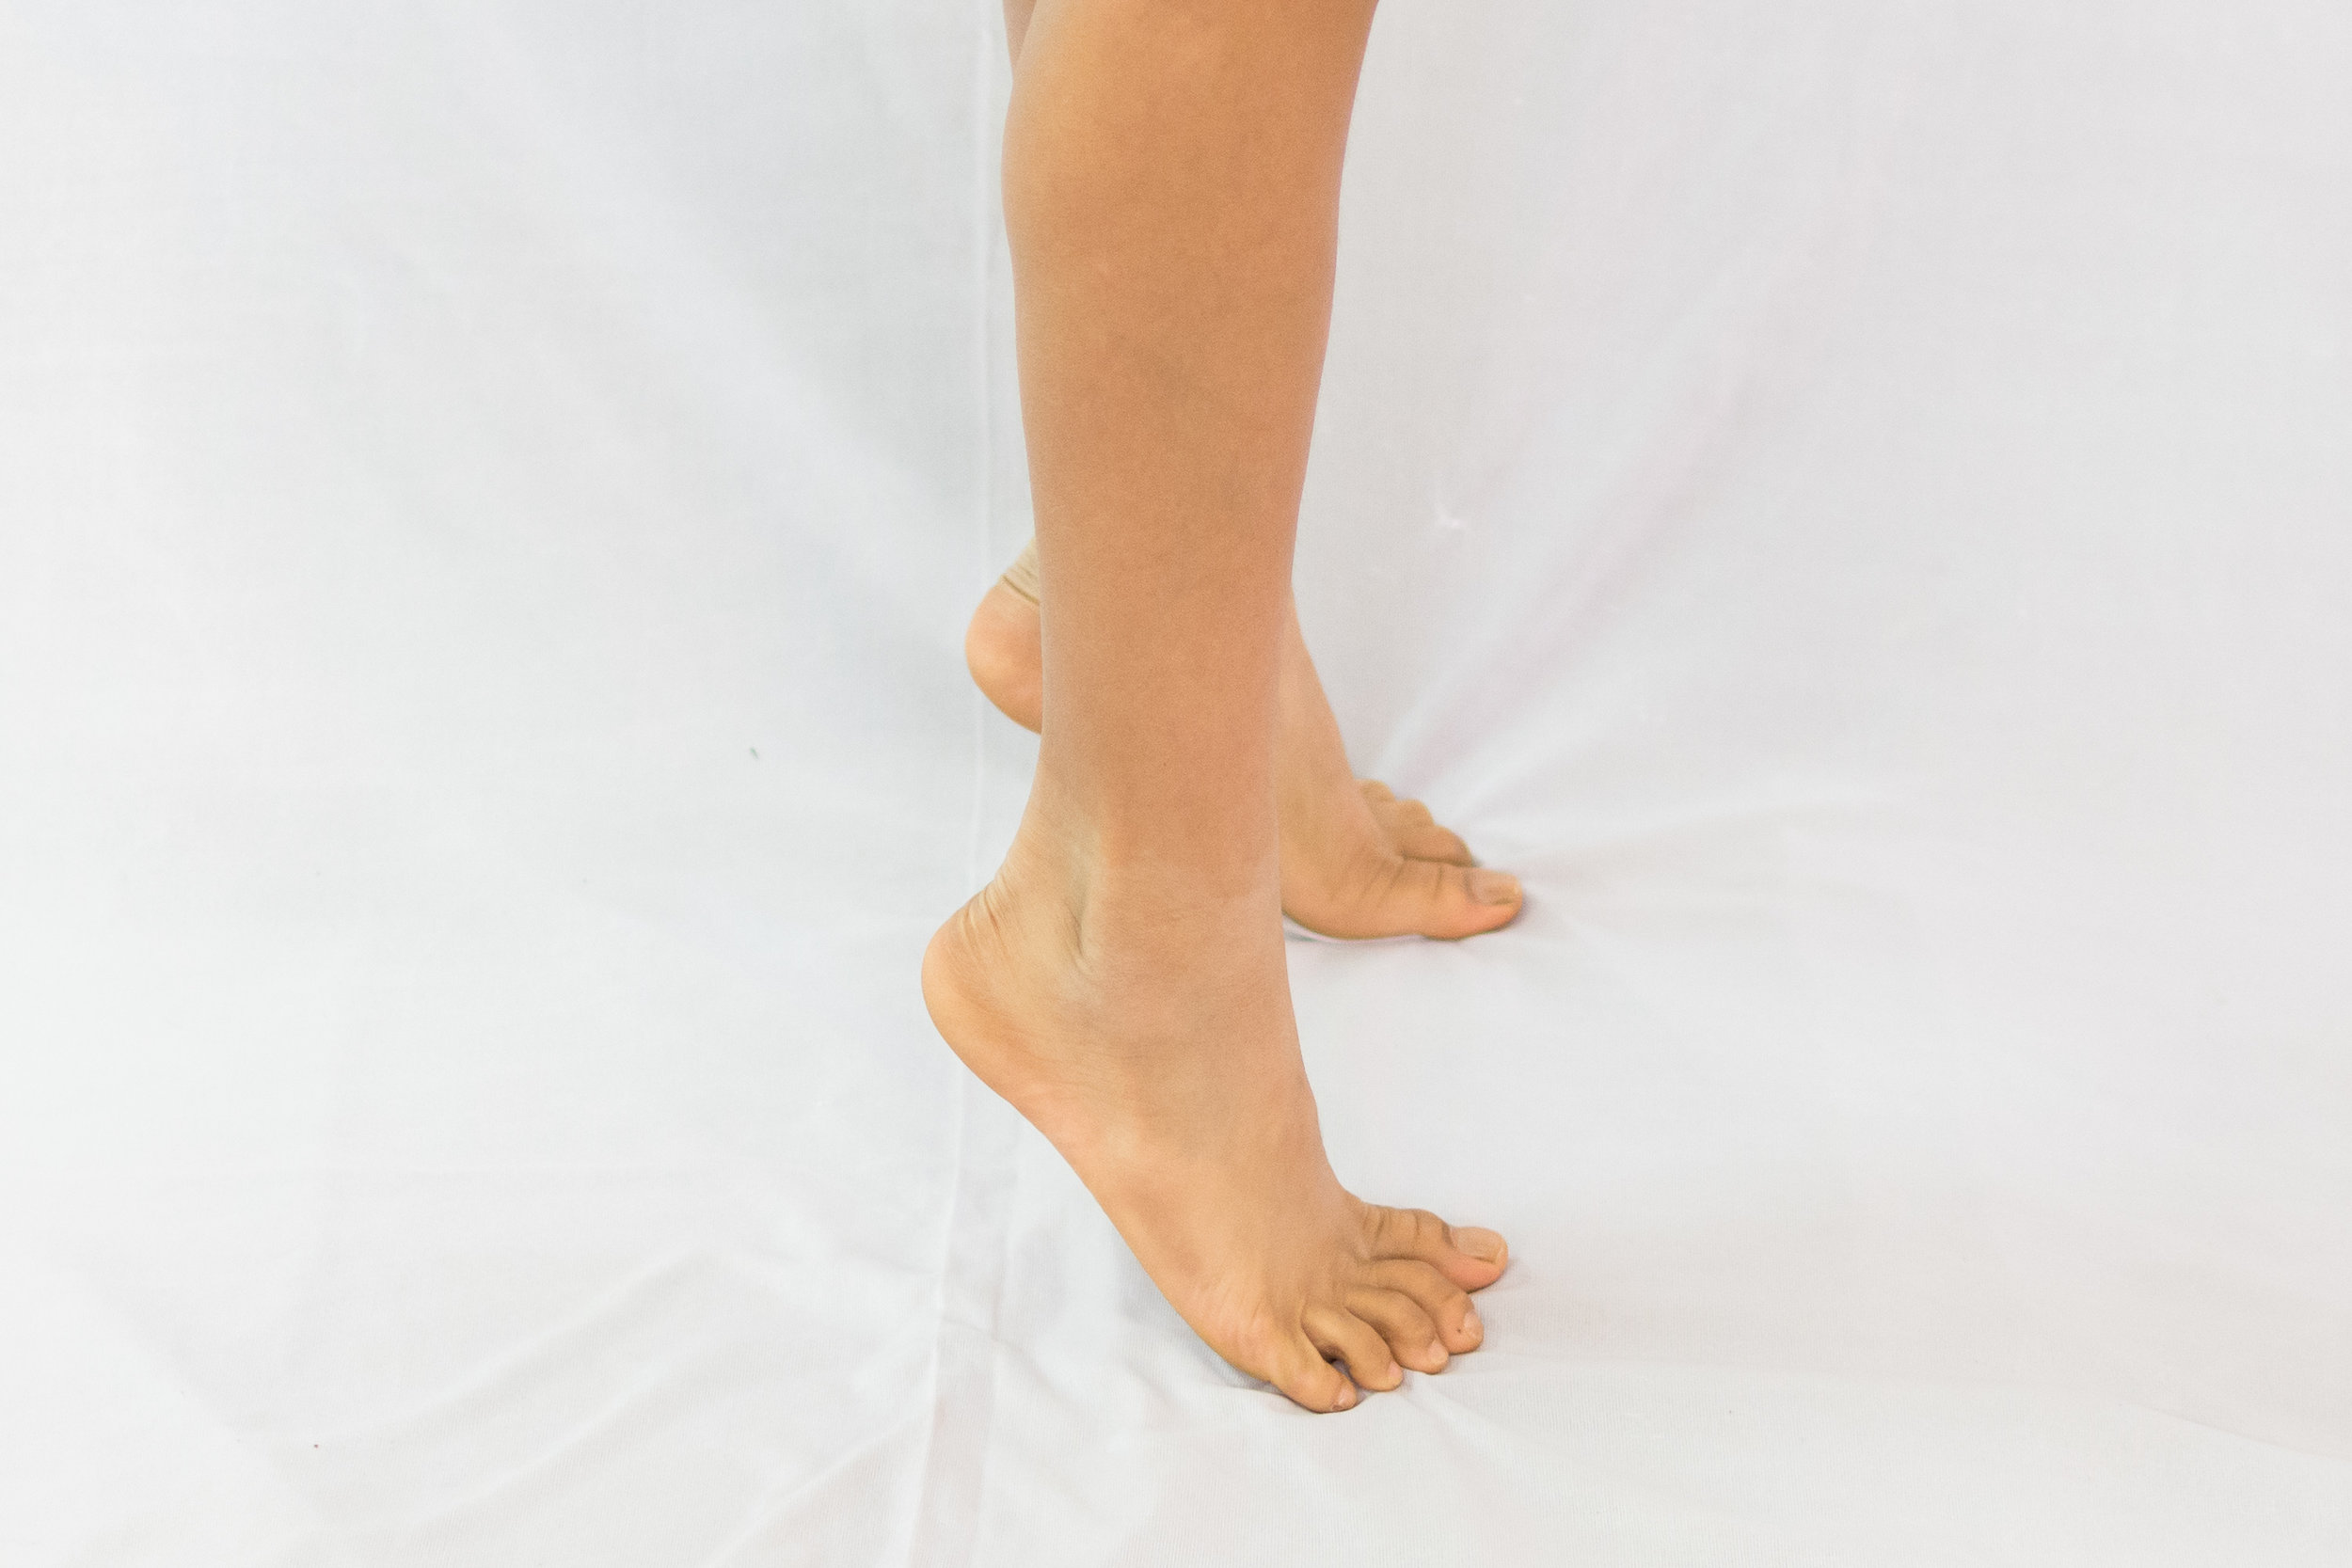 Elven Raises - Stand tall like a puppet as if the string is pulling you up. Now raise heels of both the feet off the ground as if you are being pulled up even further off the ground.Go up and down slowly without any jerky movements.It can be done anywhere, anytime.